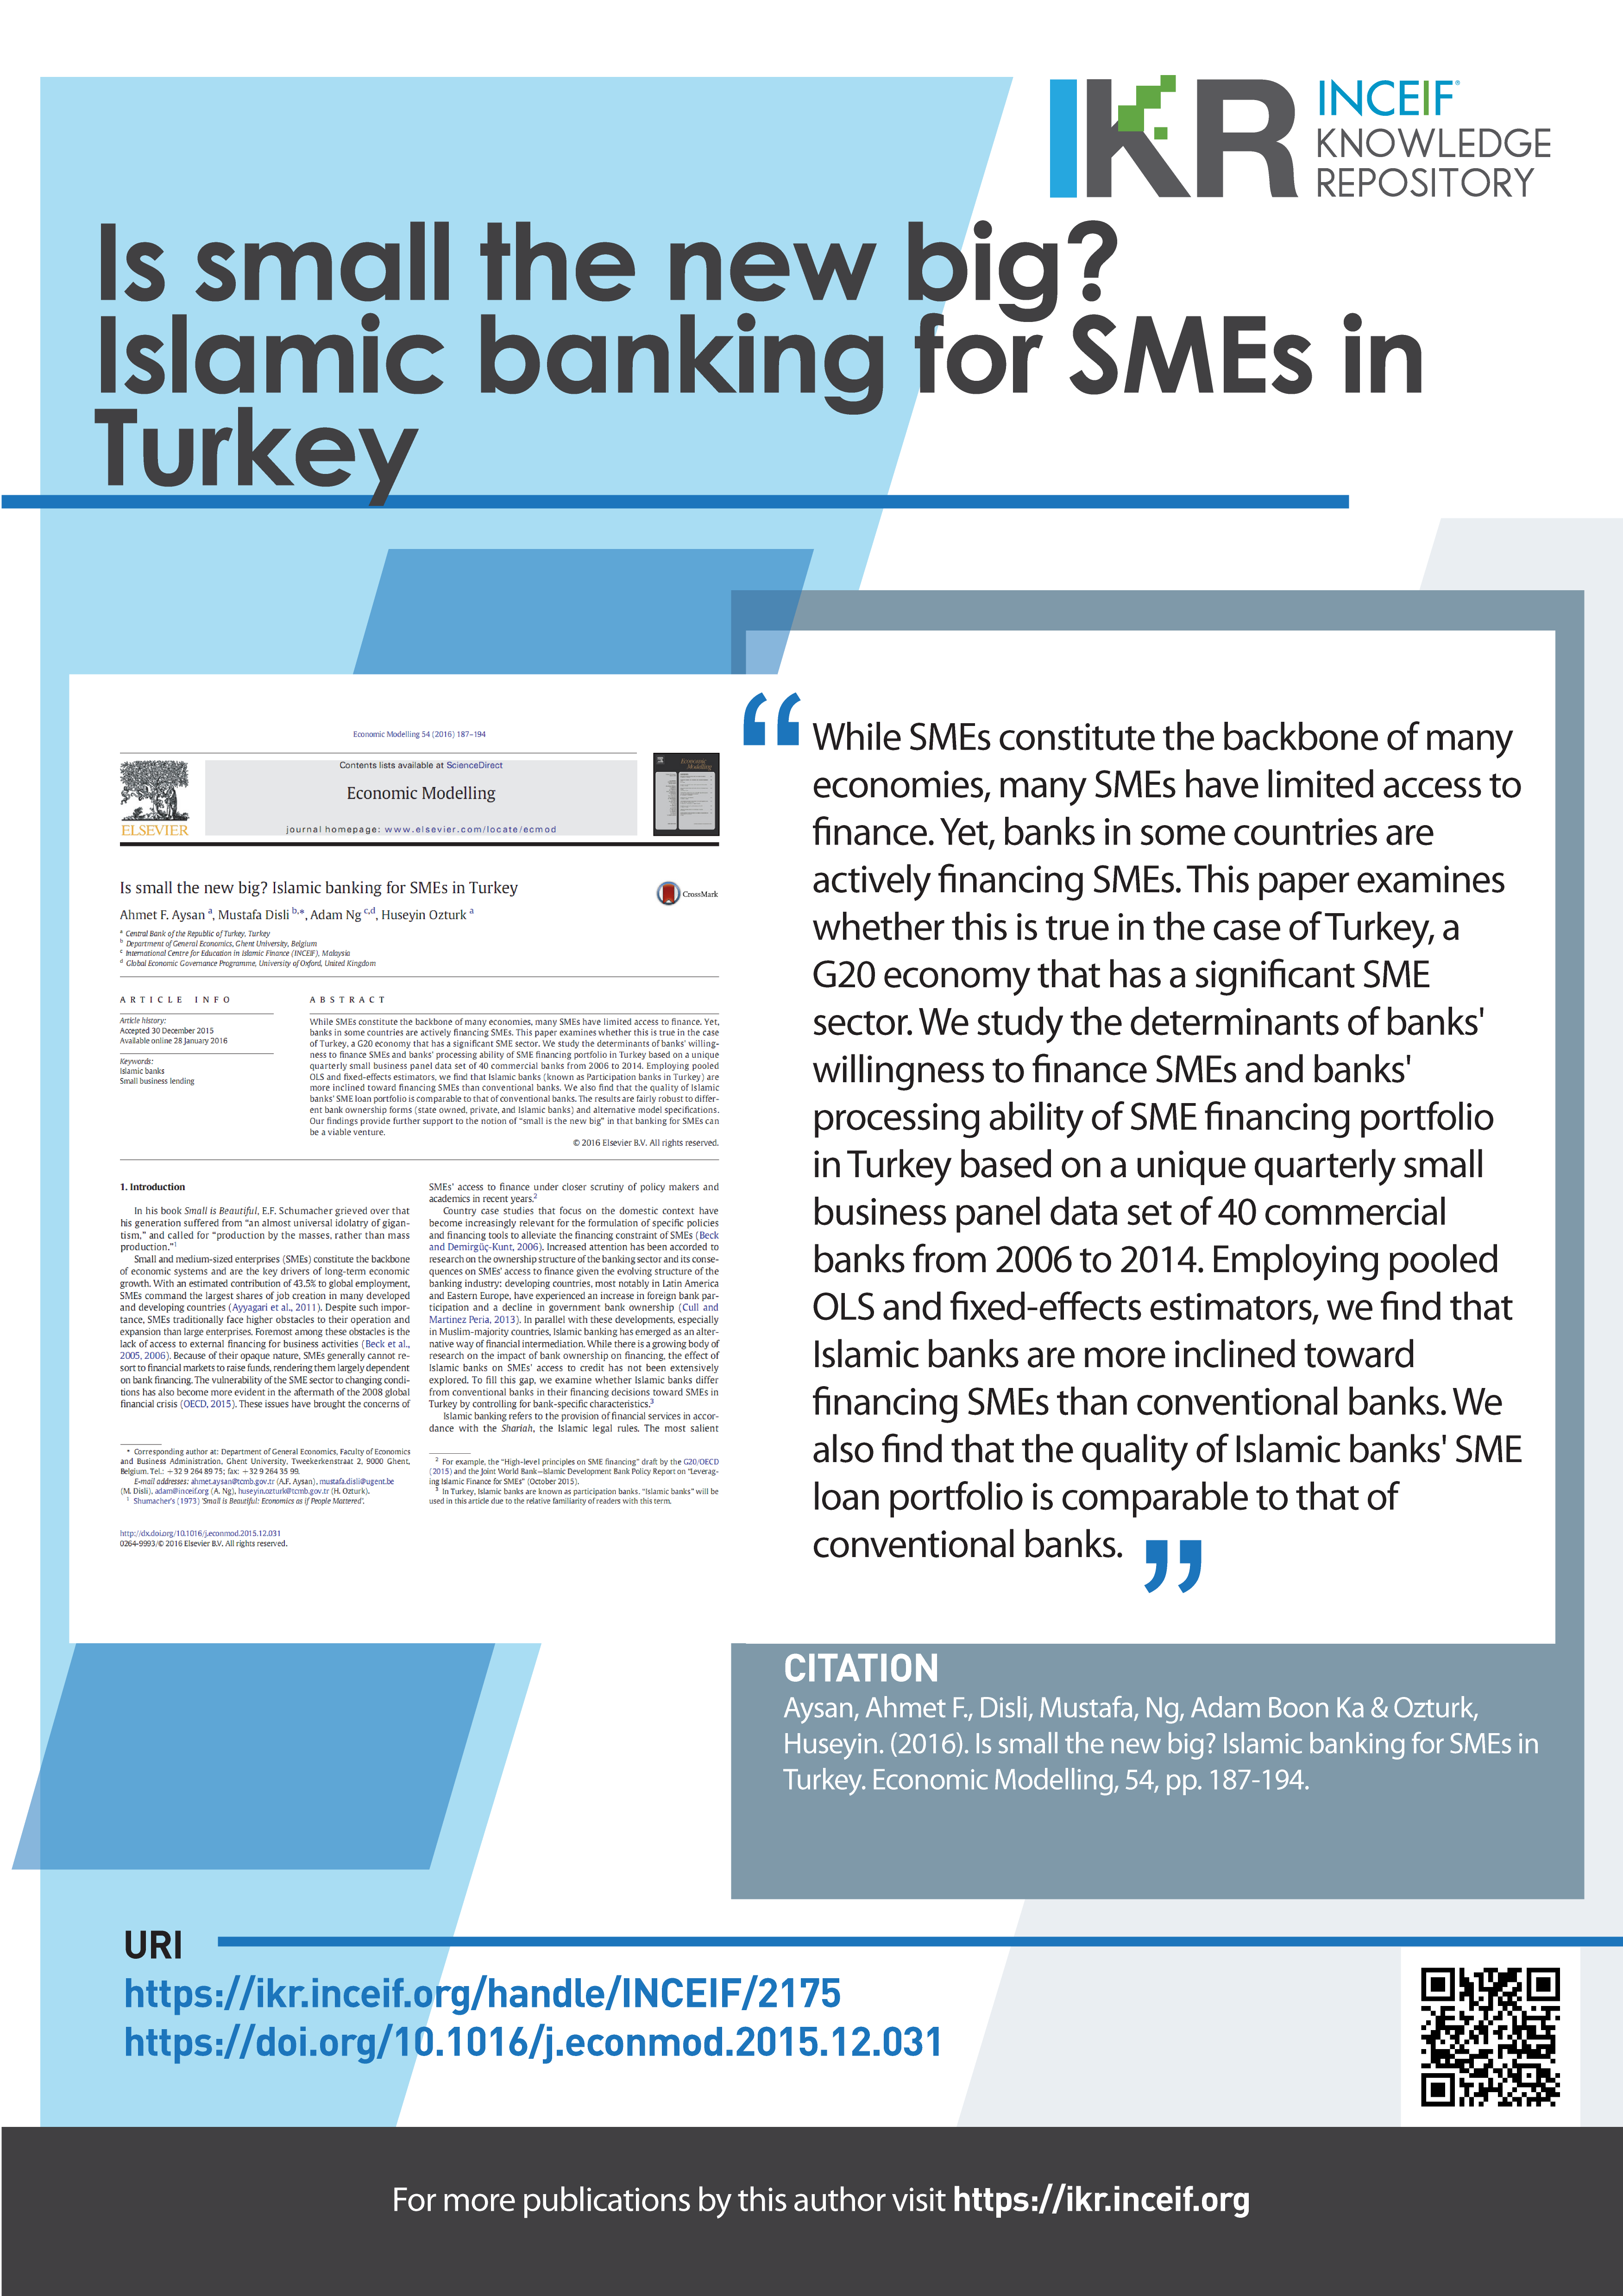 Is small the new big? Islamic banking for SMEs in Turkey